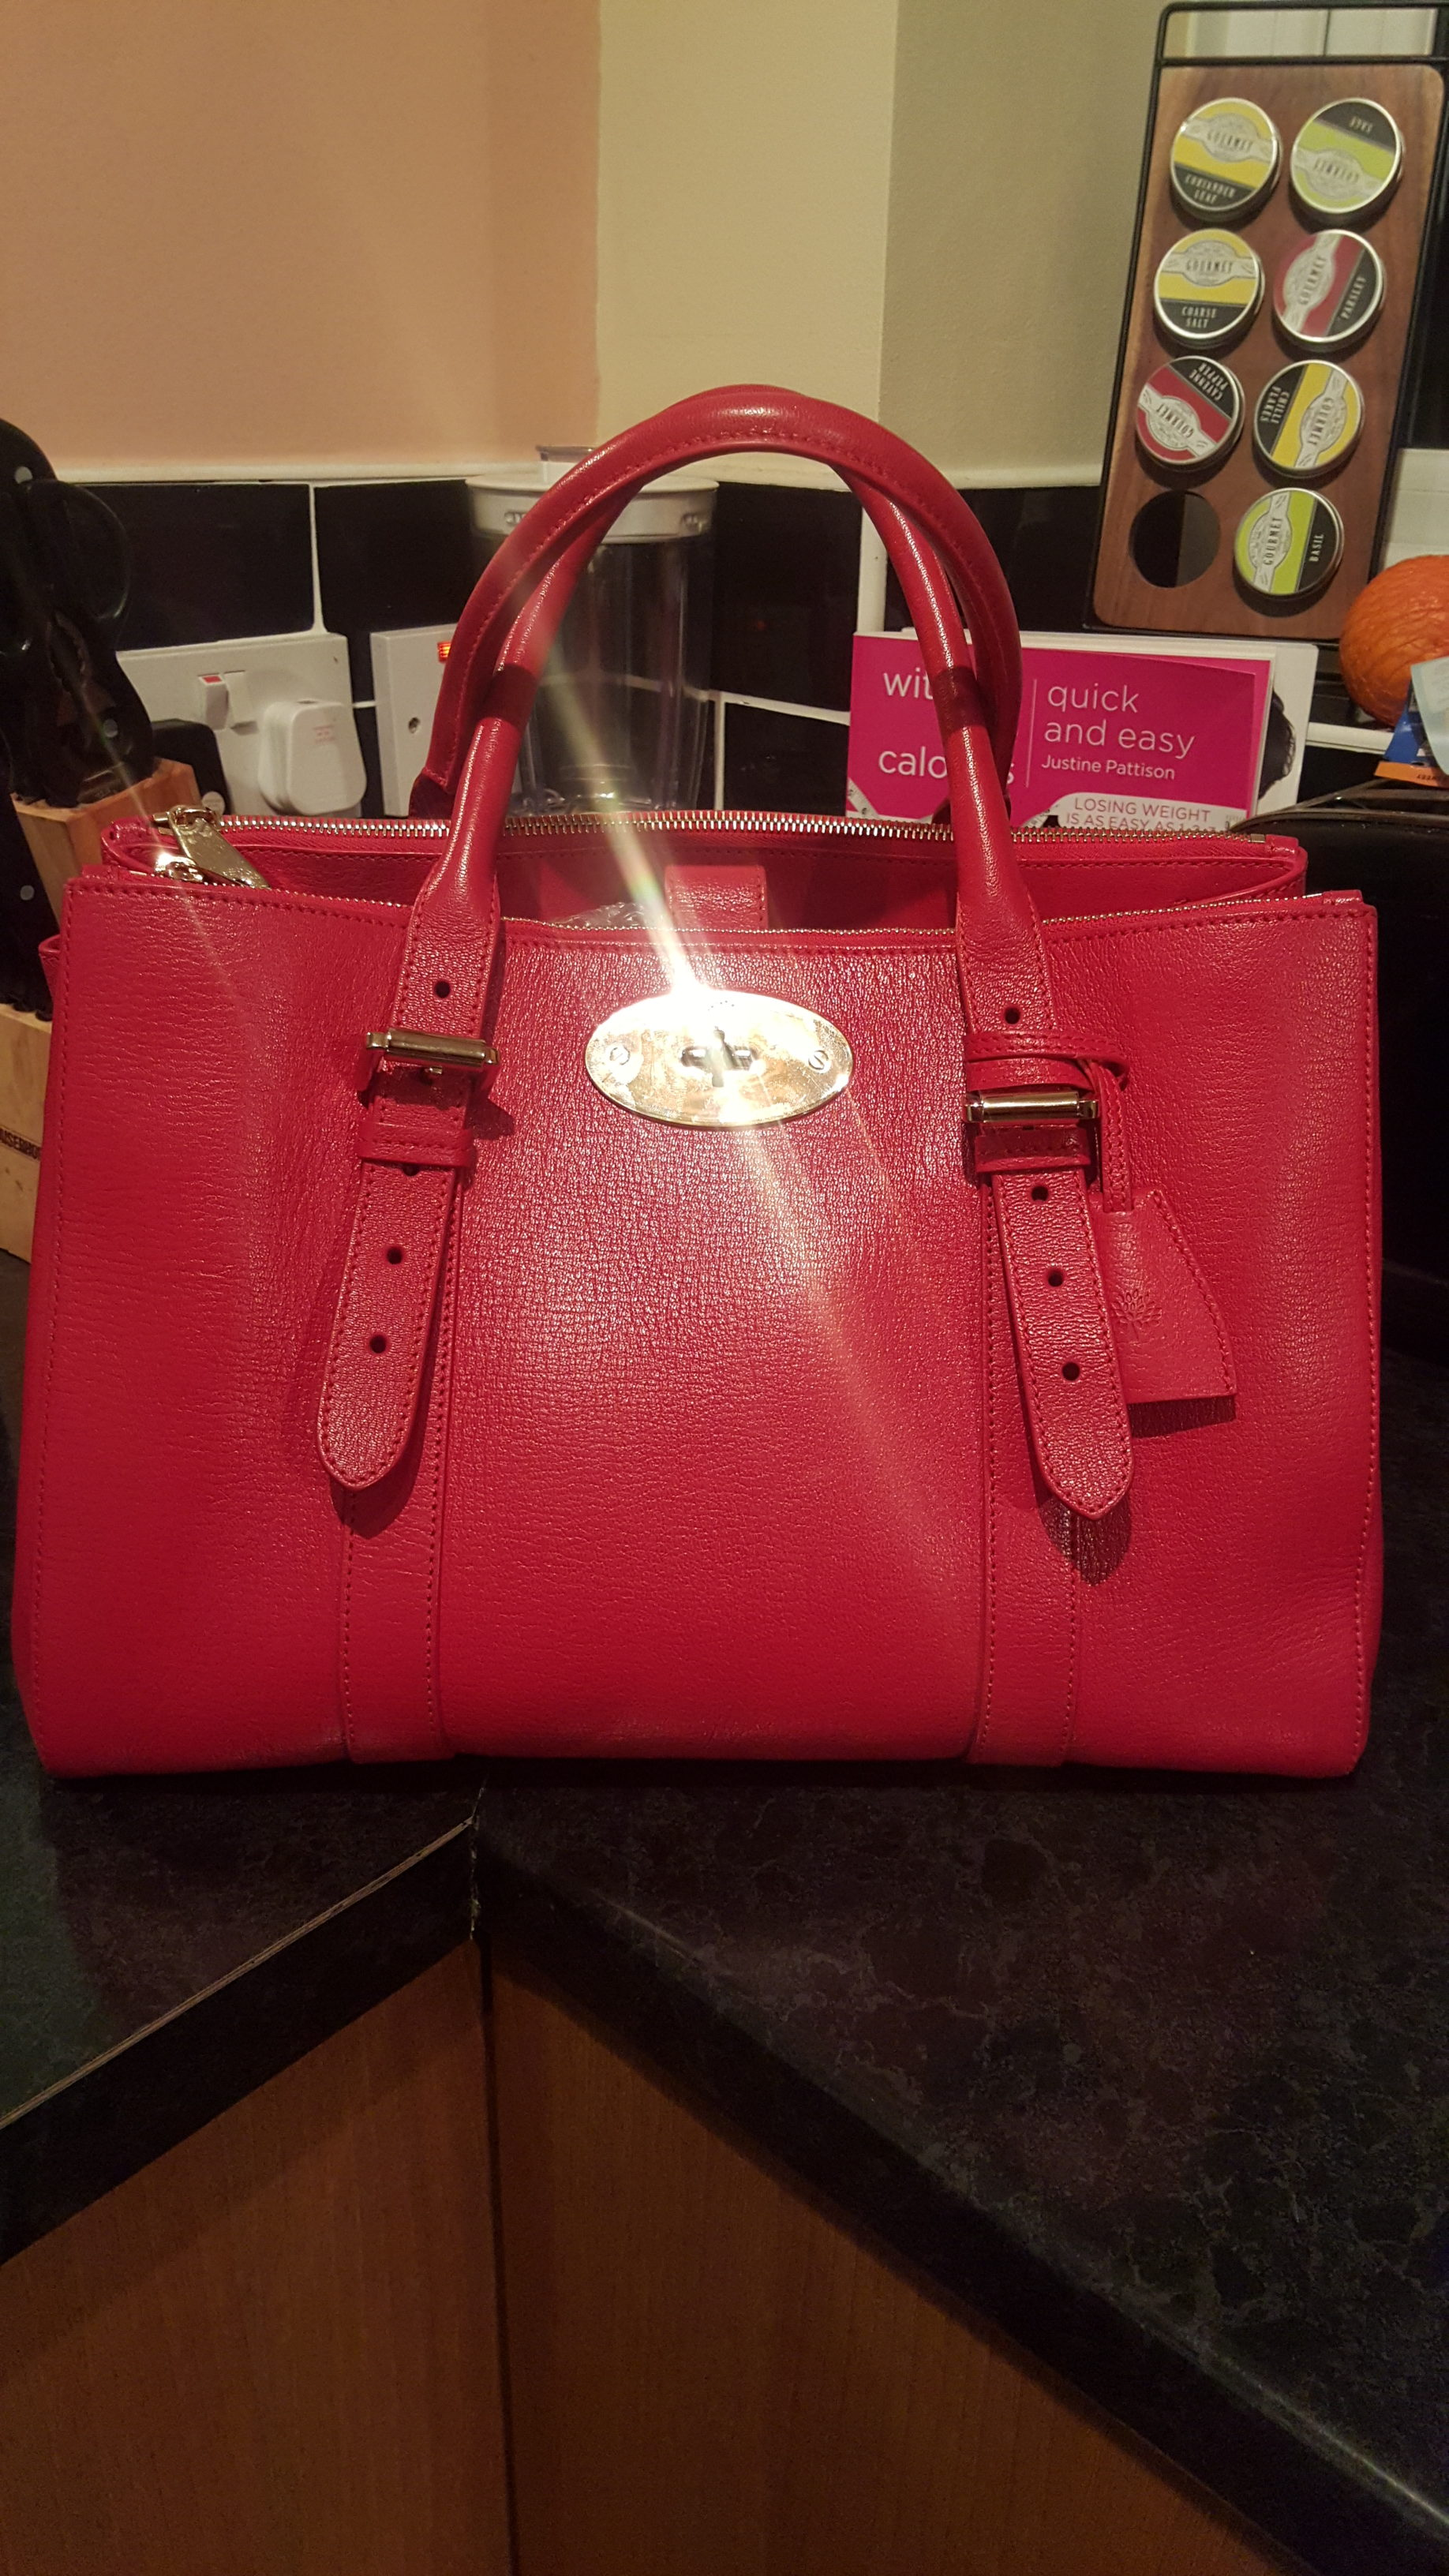 So after winning my amazing Mulberry Handbag worth a staggering £1600 75bad483571e3